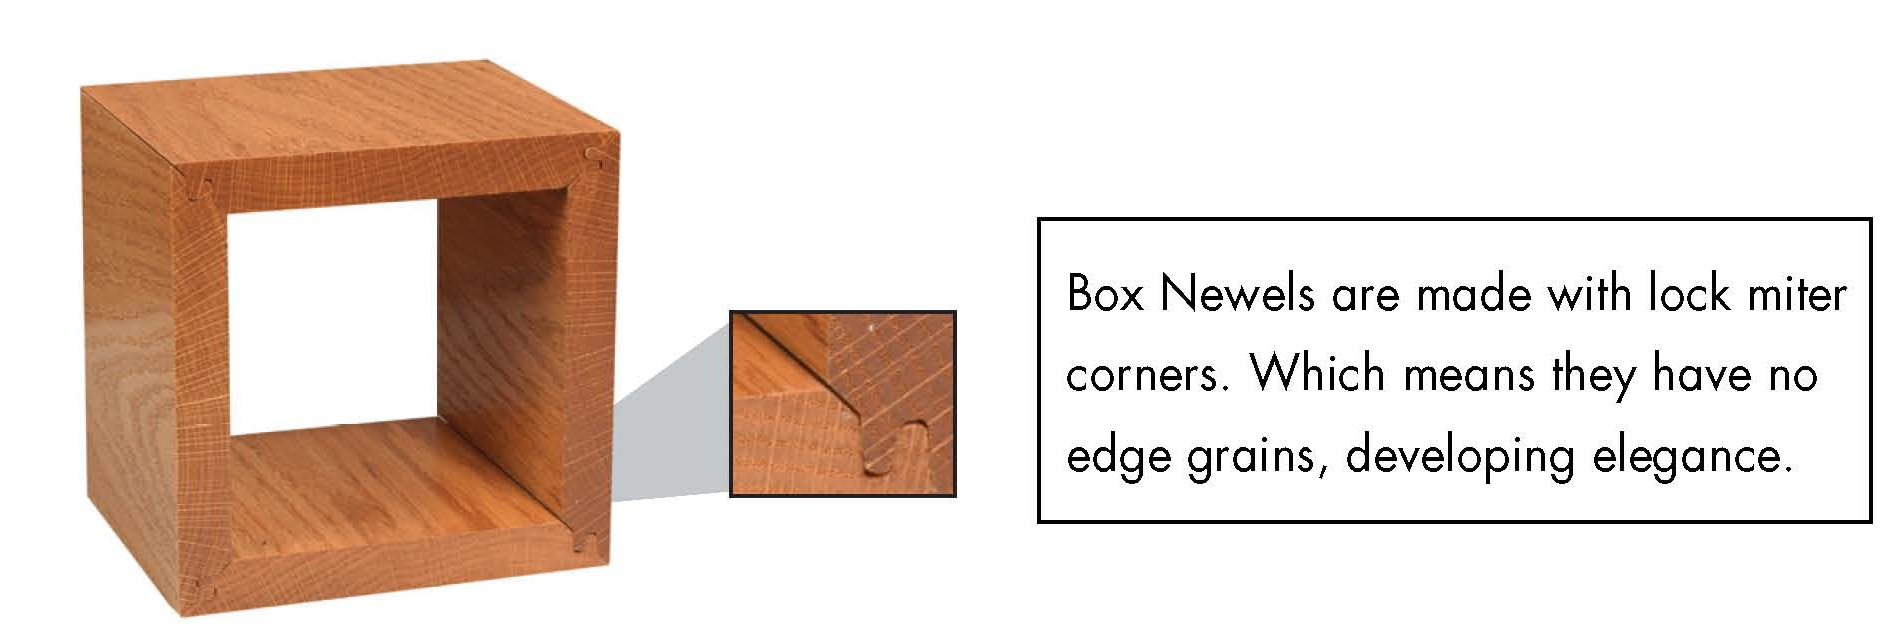 Box Newels with Lock Mitered Corners